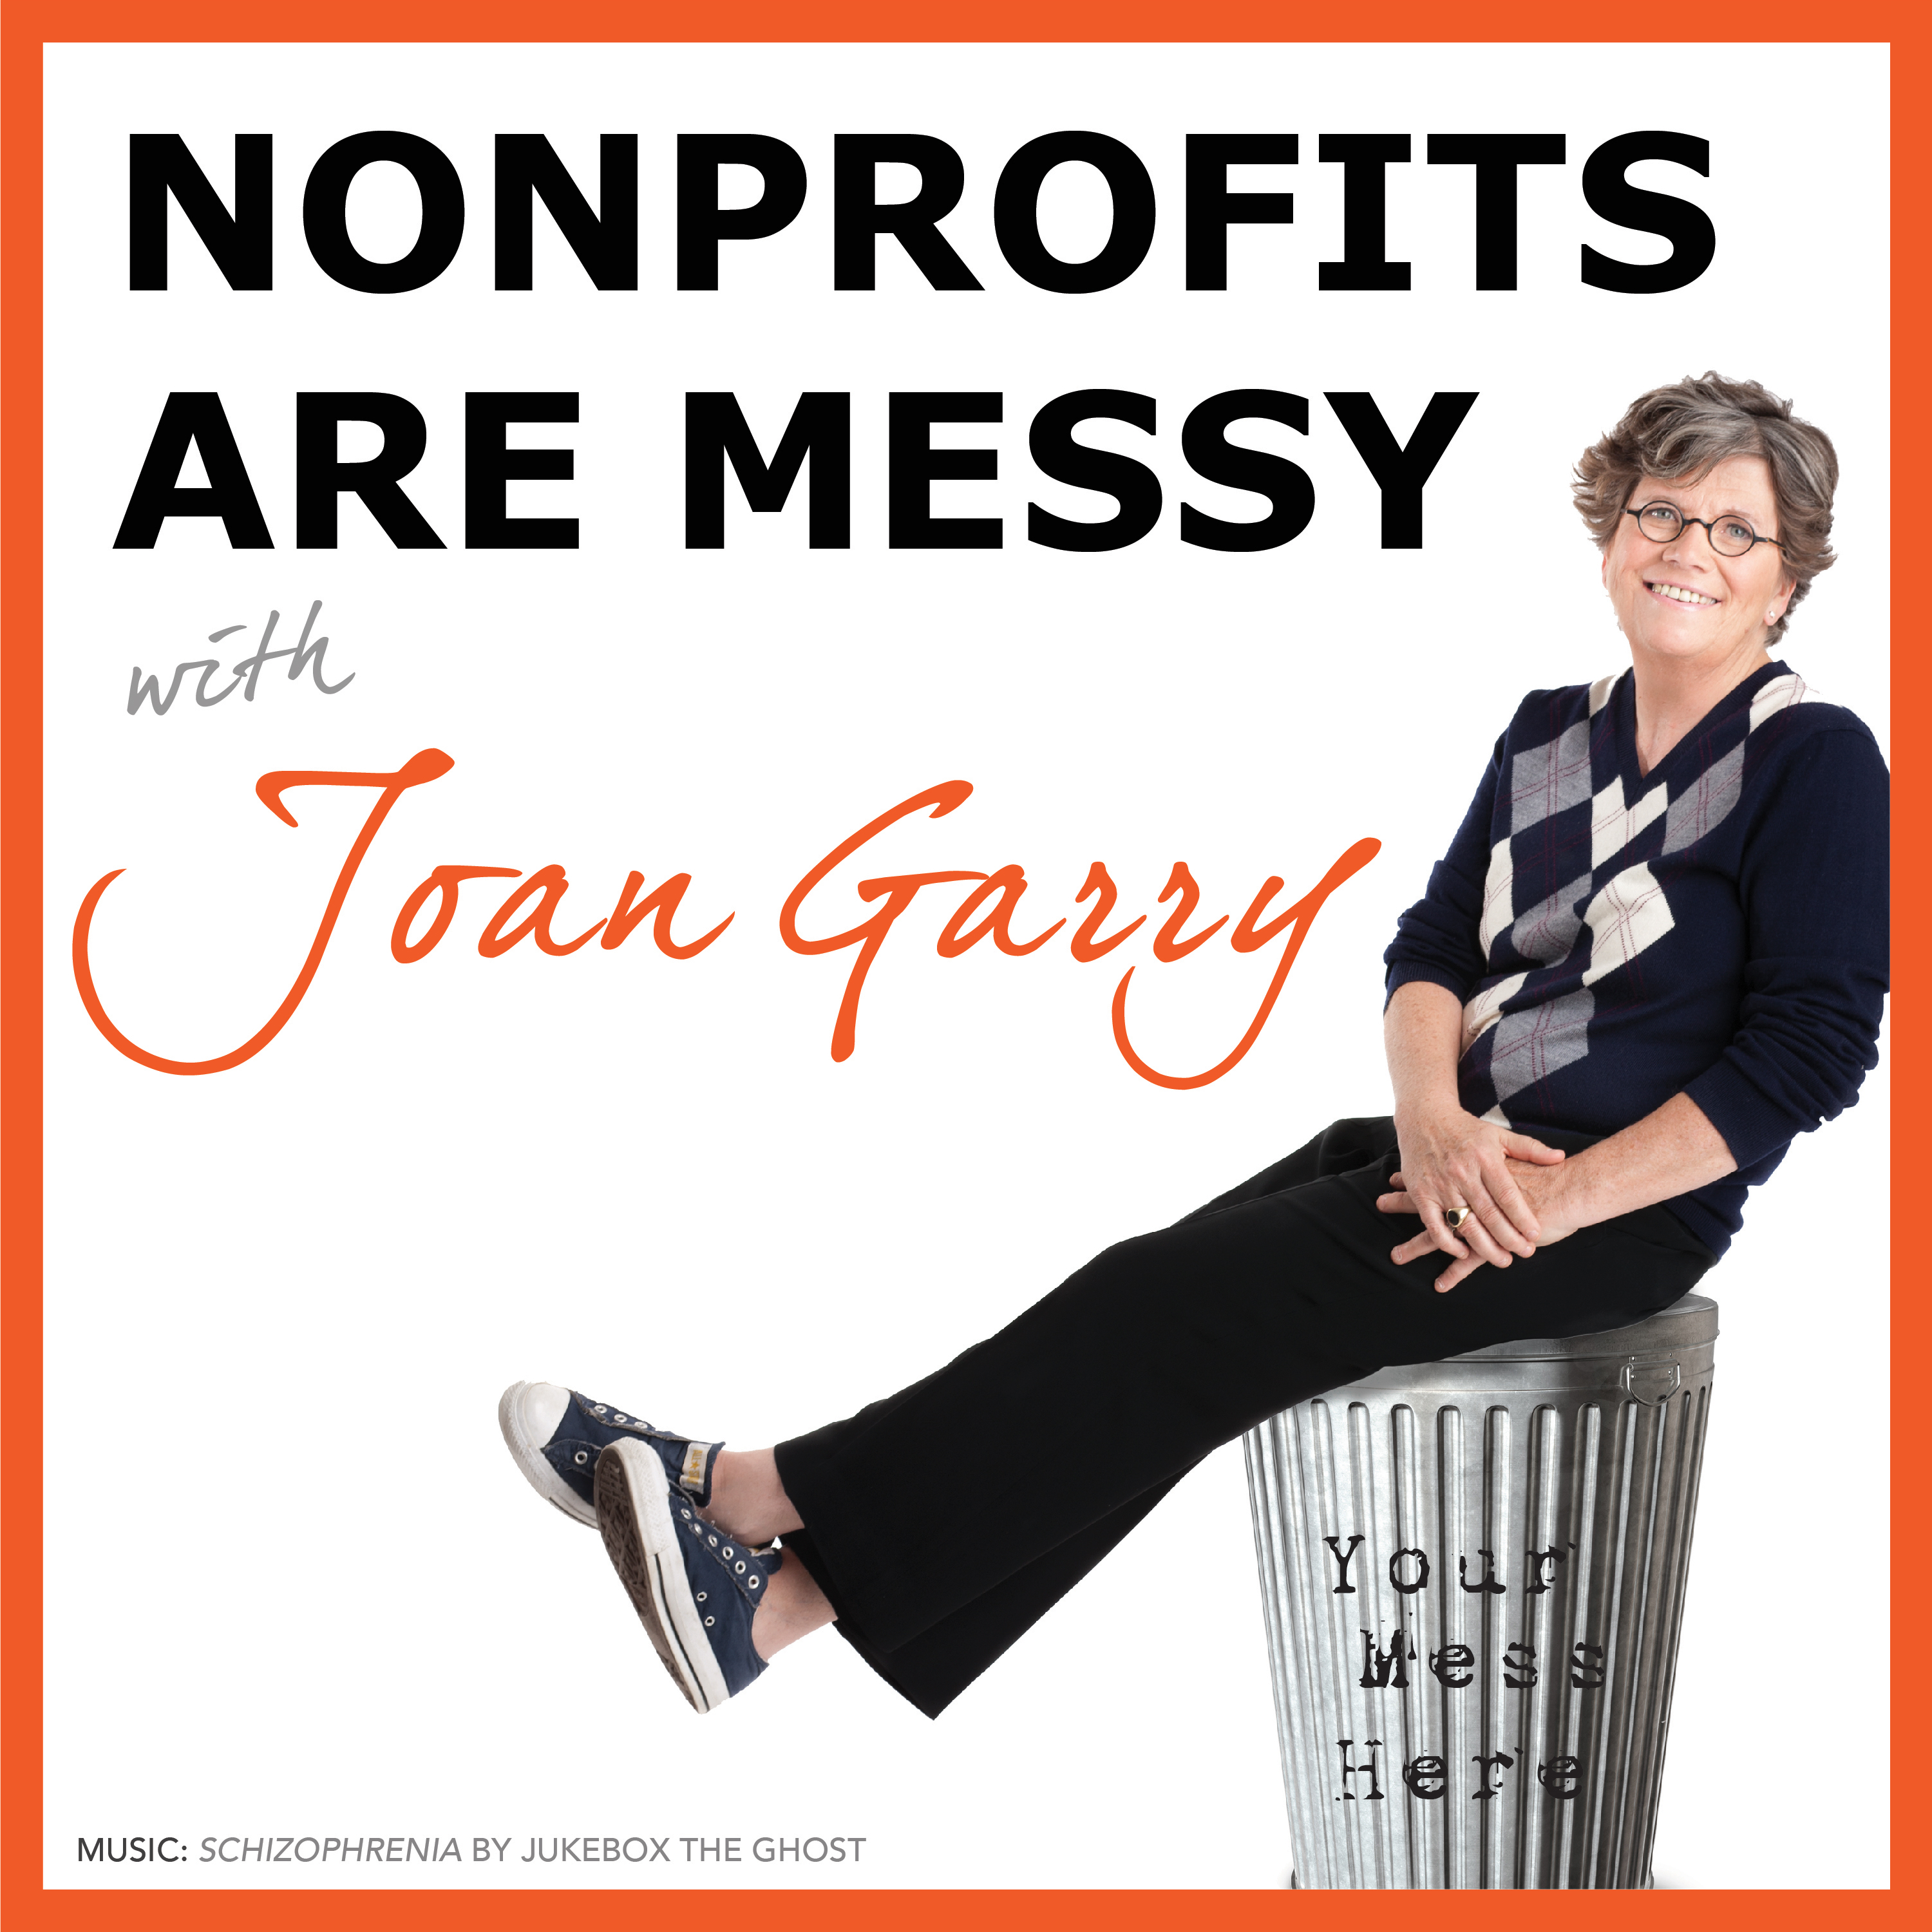 Ep 127: Building a Grassroots Movement From Scratch